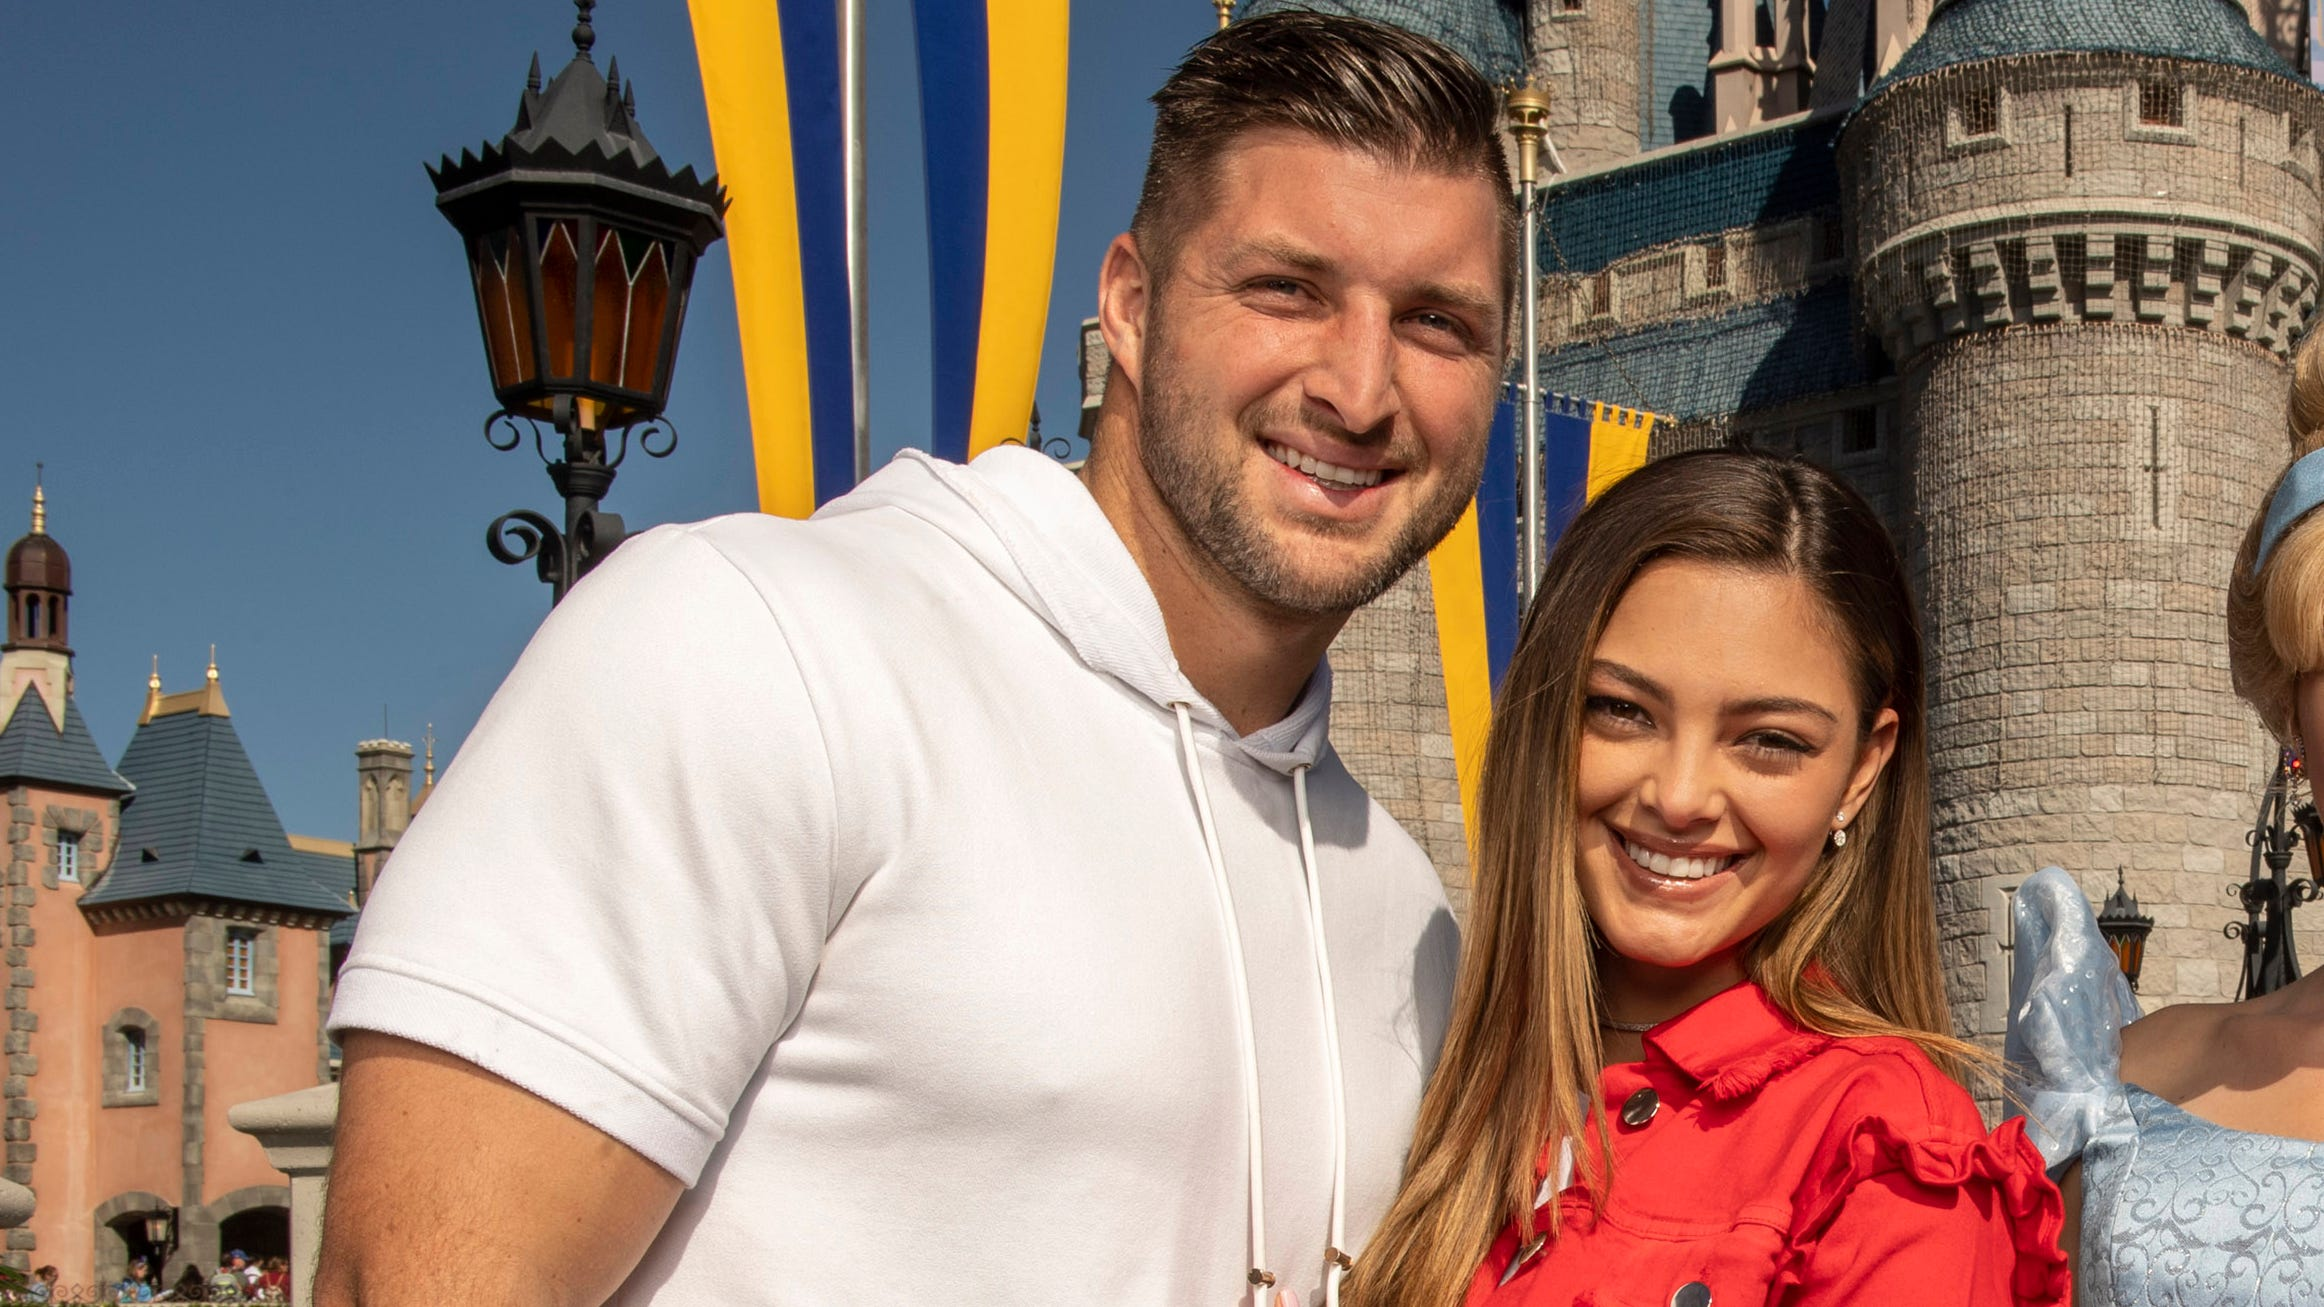 Tim Tebow Heads To Disney World With New Fiancee Demi Leigh Nel Peters